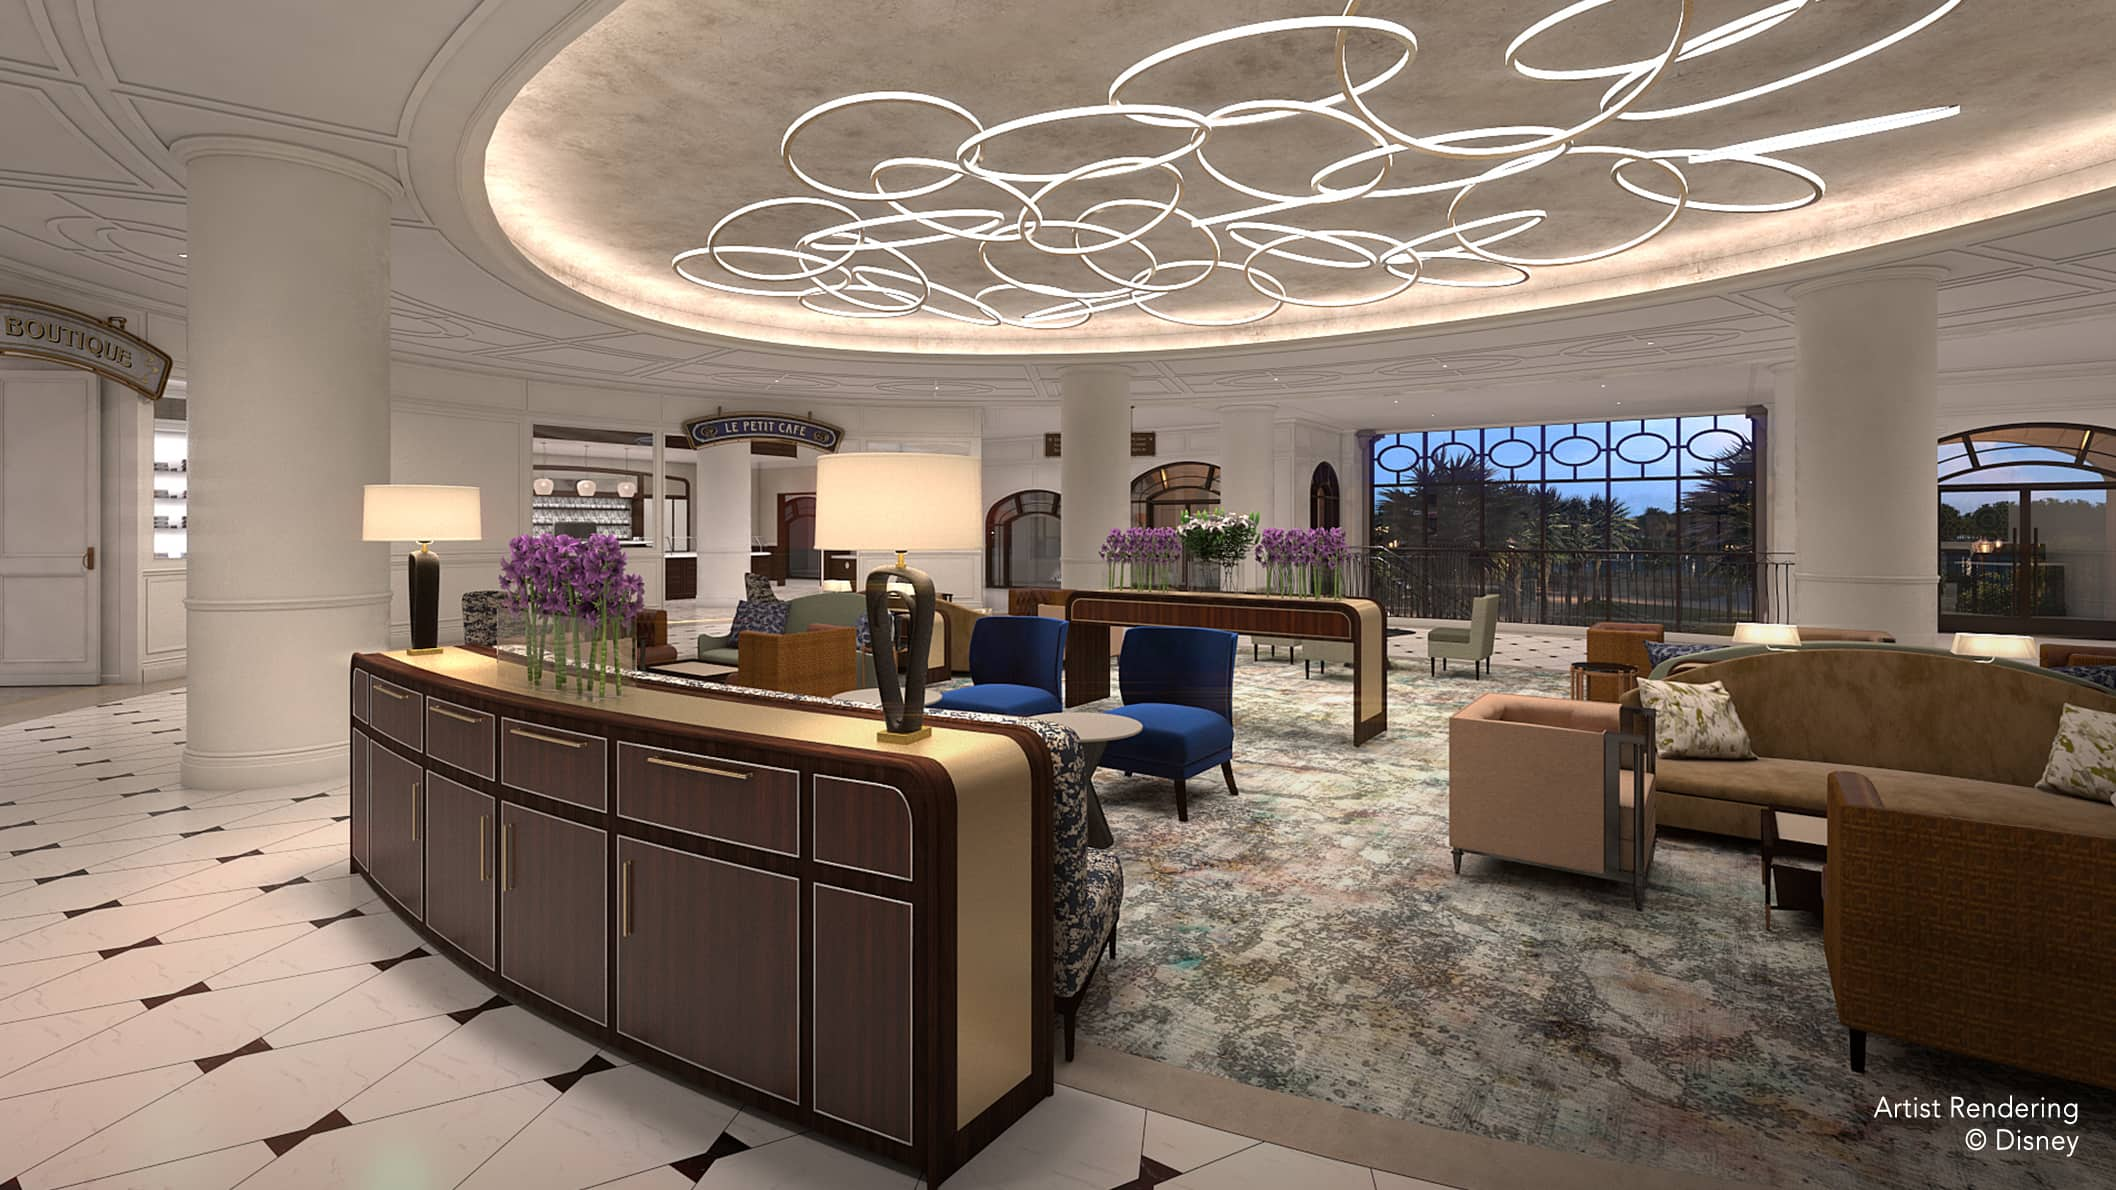 The Lobby lounge area at Disney's Riviera Resort, furnished with chairs, sofas and tables